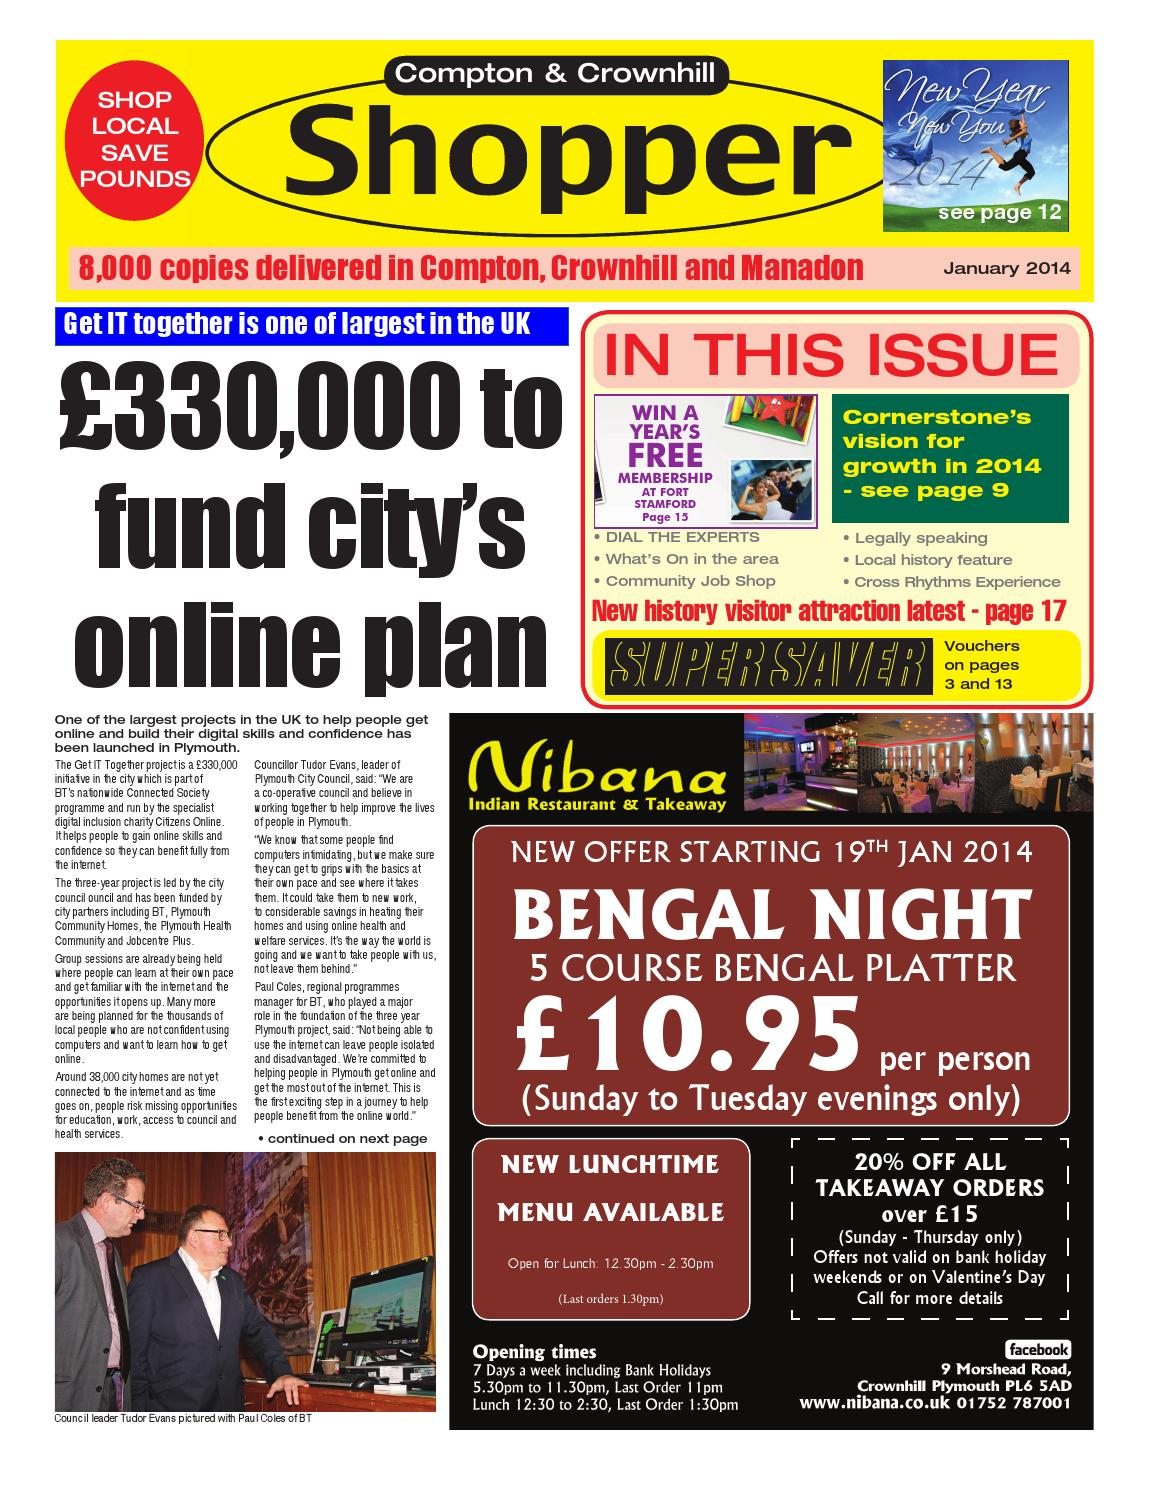 Plymouth Shopper January 2014 By Cornerstone Vision